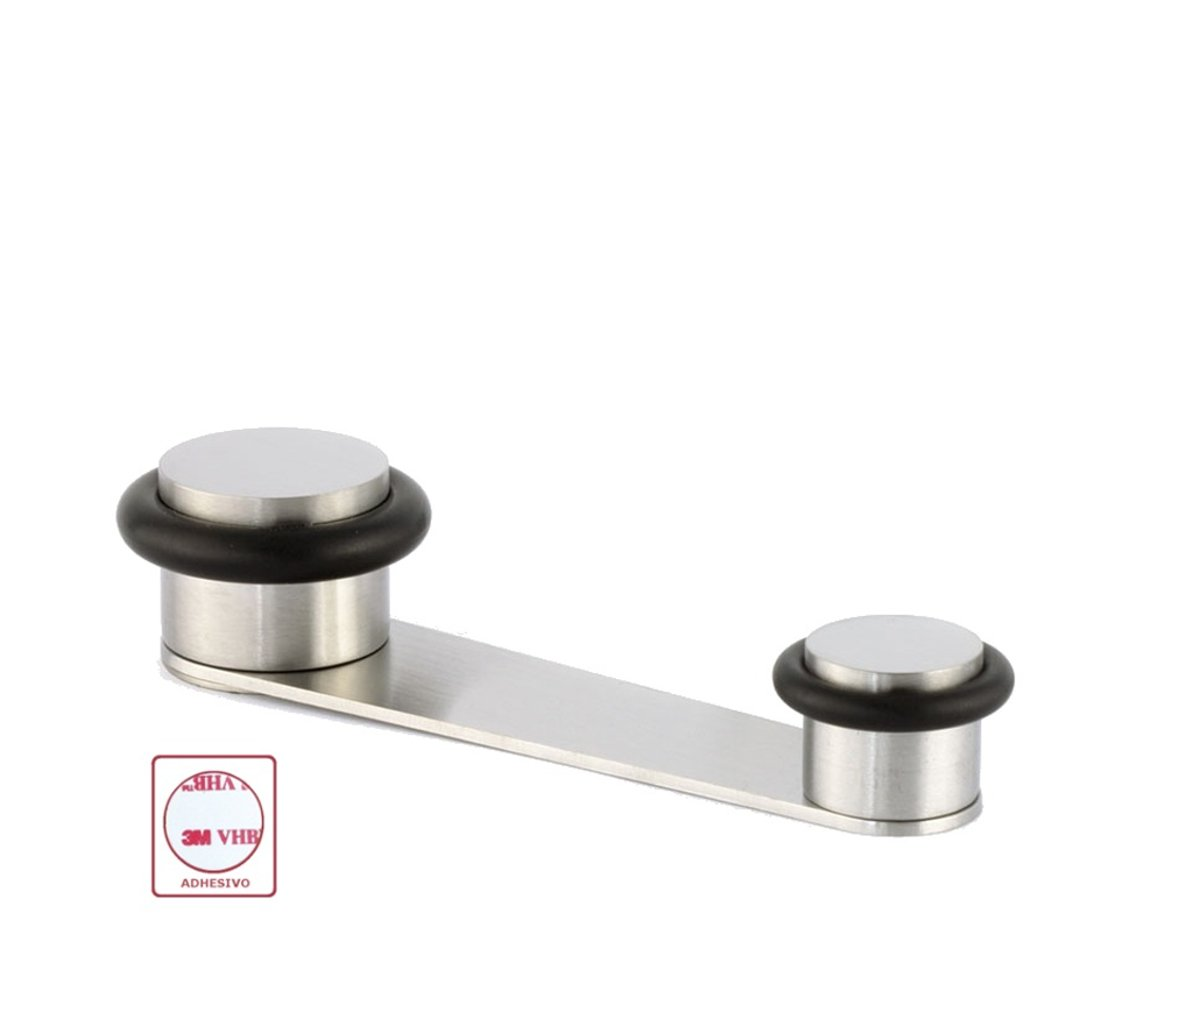 Evi Fittings I-164-ad Door Stop with Retainer Rotary,Wedge Stooper,Stainless Steel, Adhesive or Screw Fix.